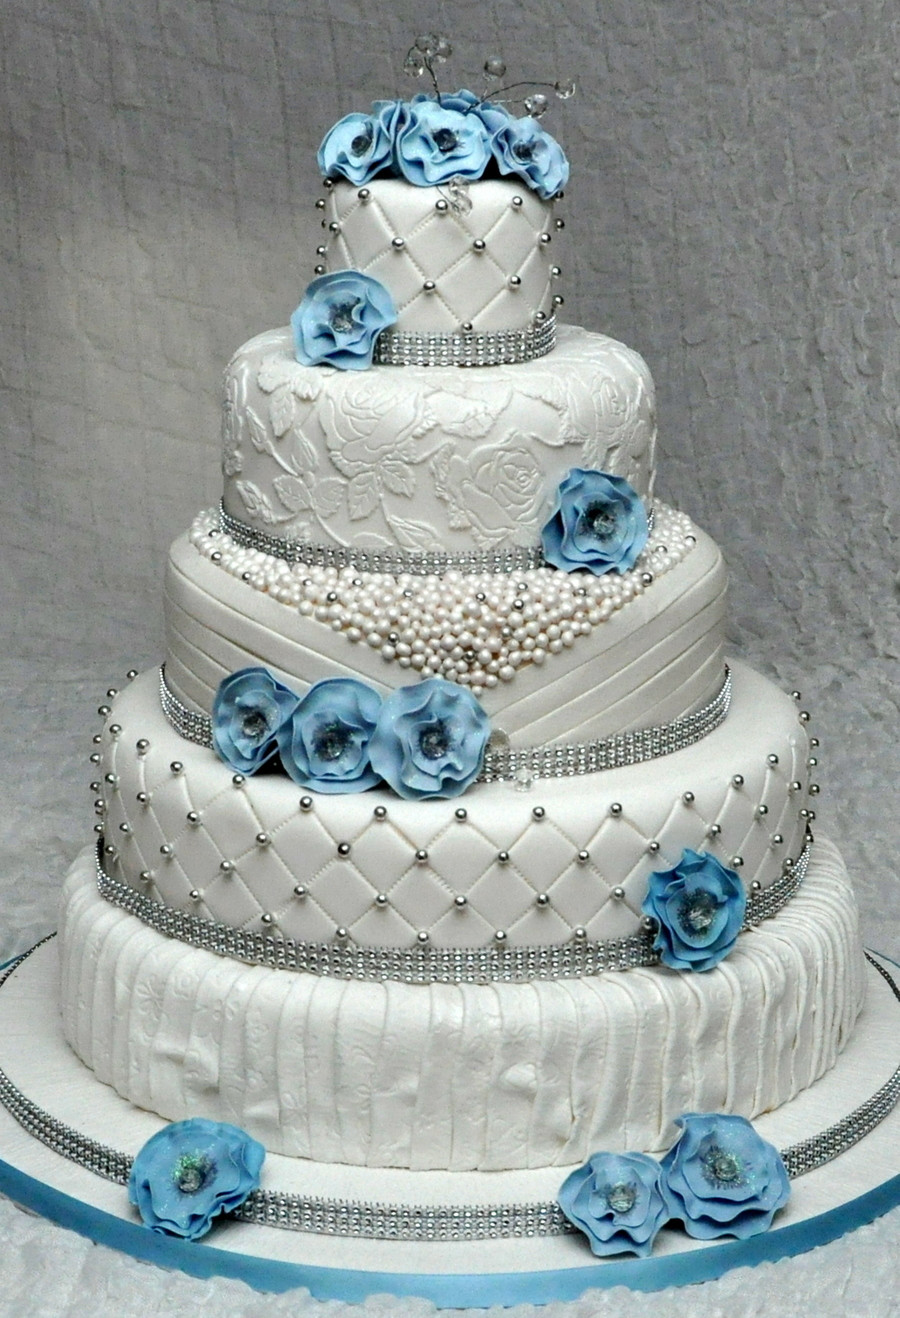 Edible Pearls For Wedding Cakes  5 Tier Wedding Cake With Edible Pearls And Lace Decorated